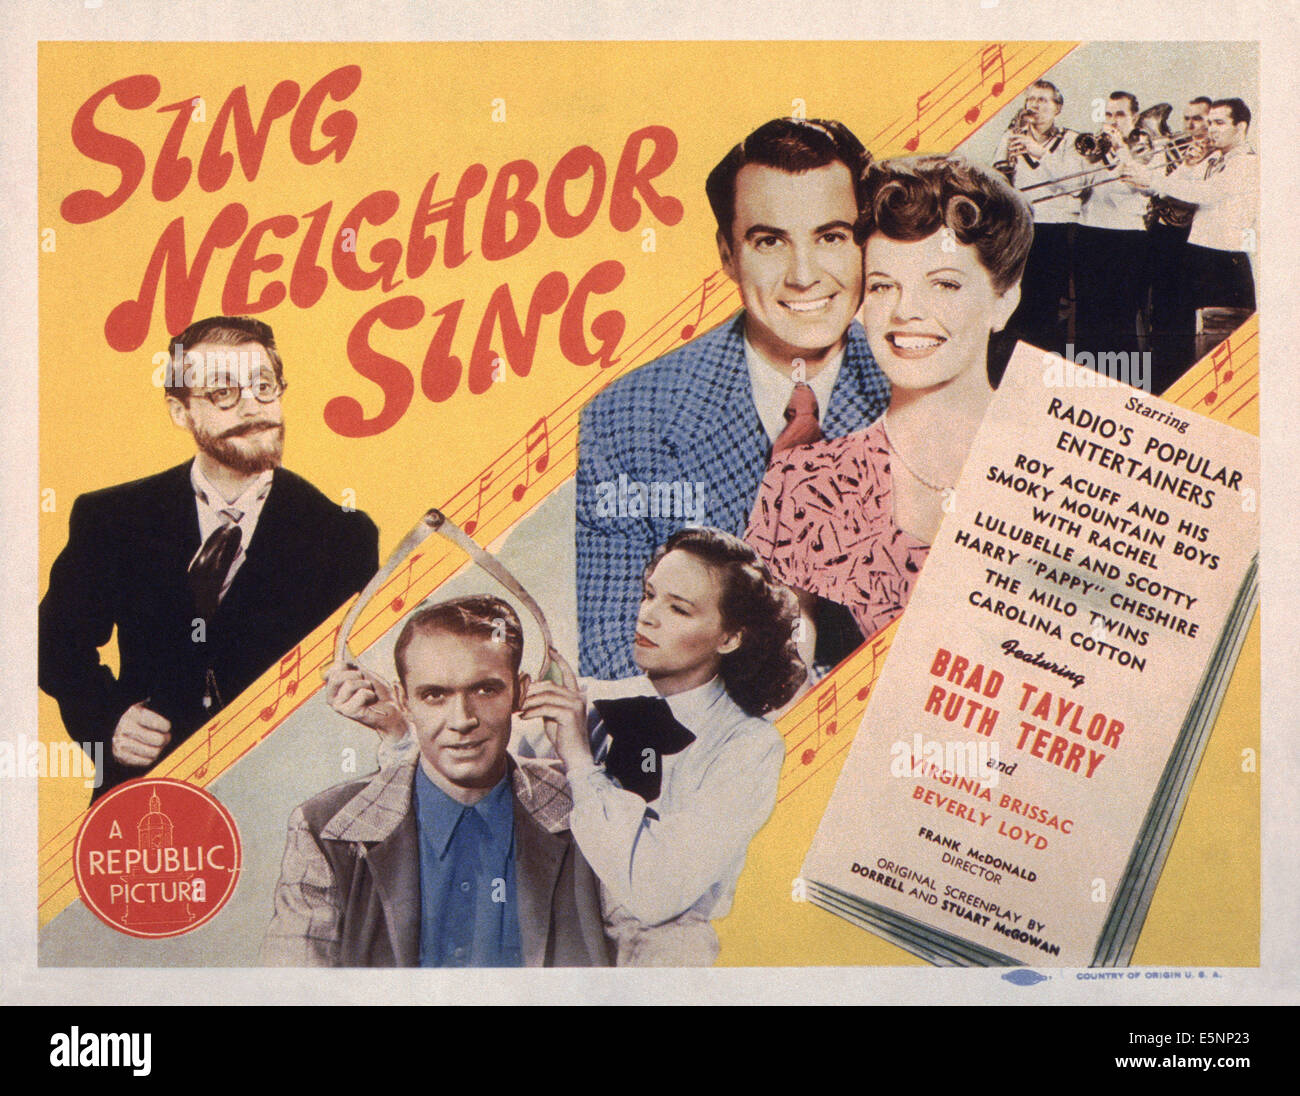 sing-neighbor-sing-us-lobbycard-top-righ